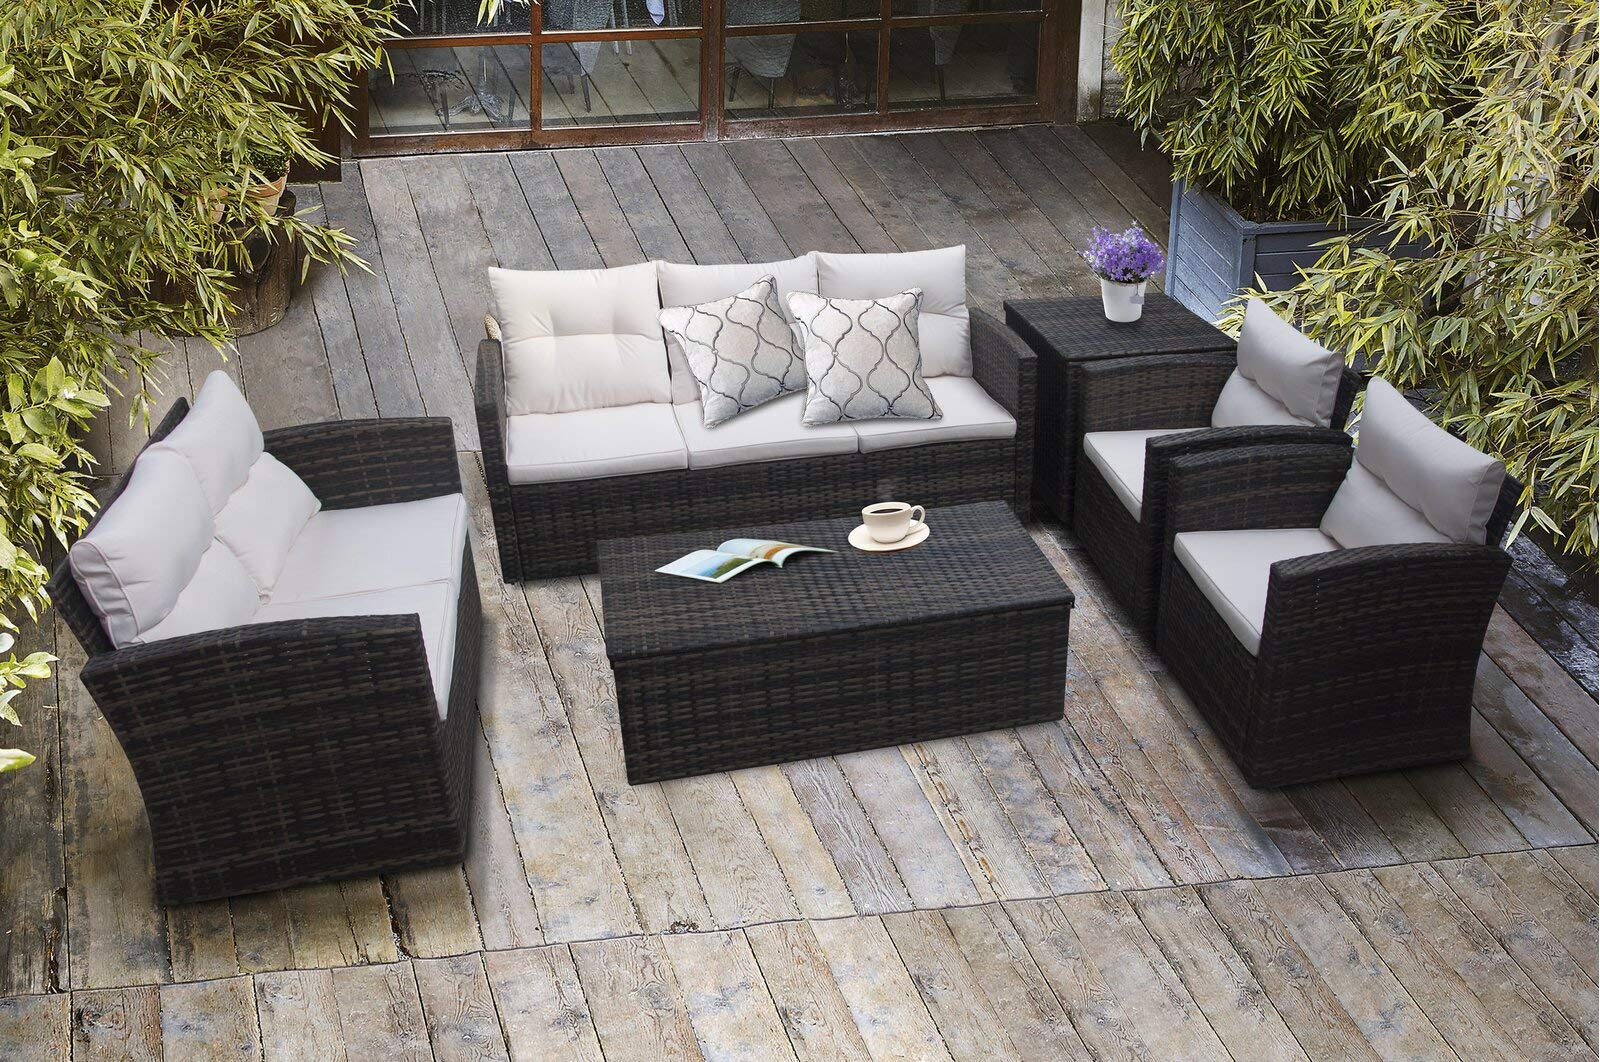 Asifom 6 Piece 7 Seats Outdoor Patio Furniture Conversation Sets PE Rattan Wicker Sectional Sofa Loveseat Chair Seating Gr...